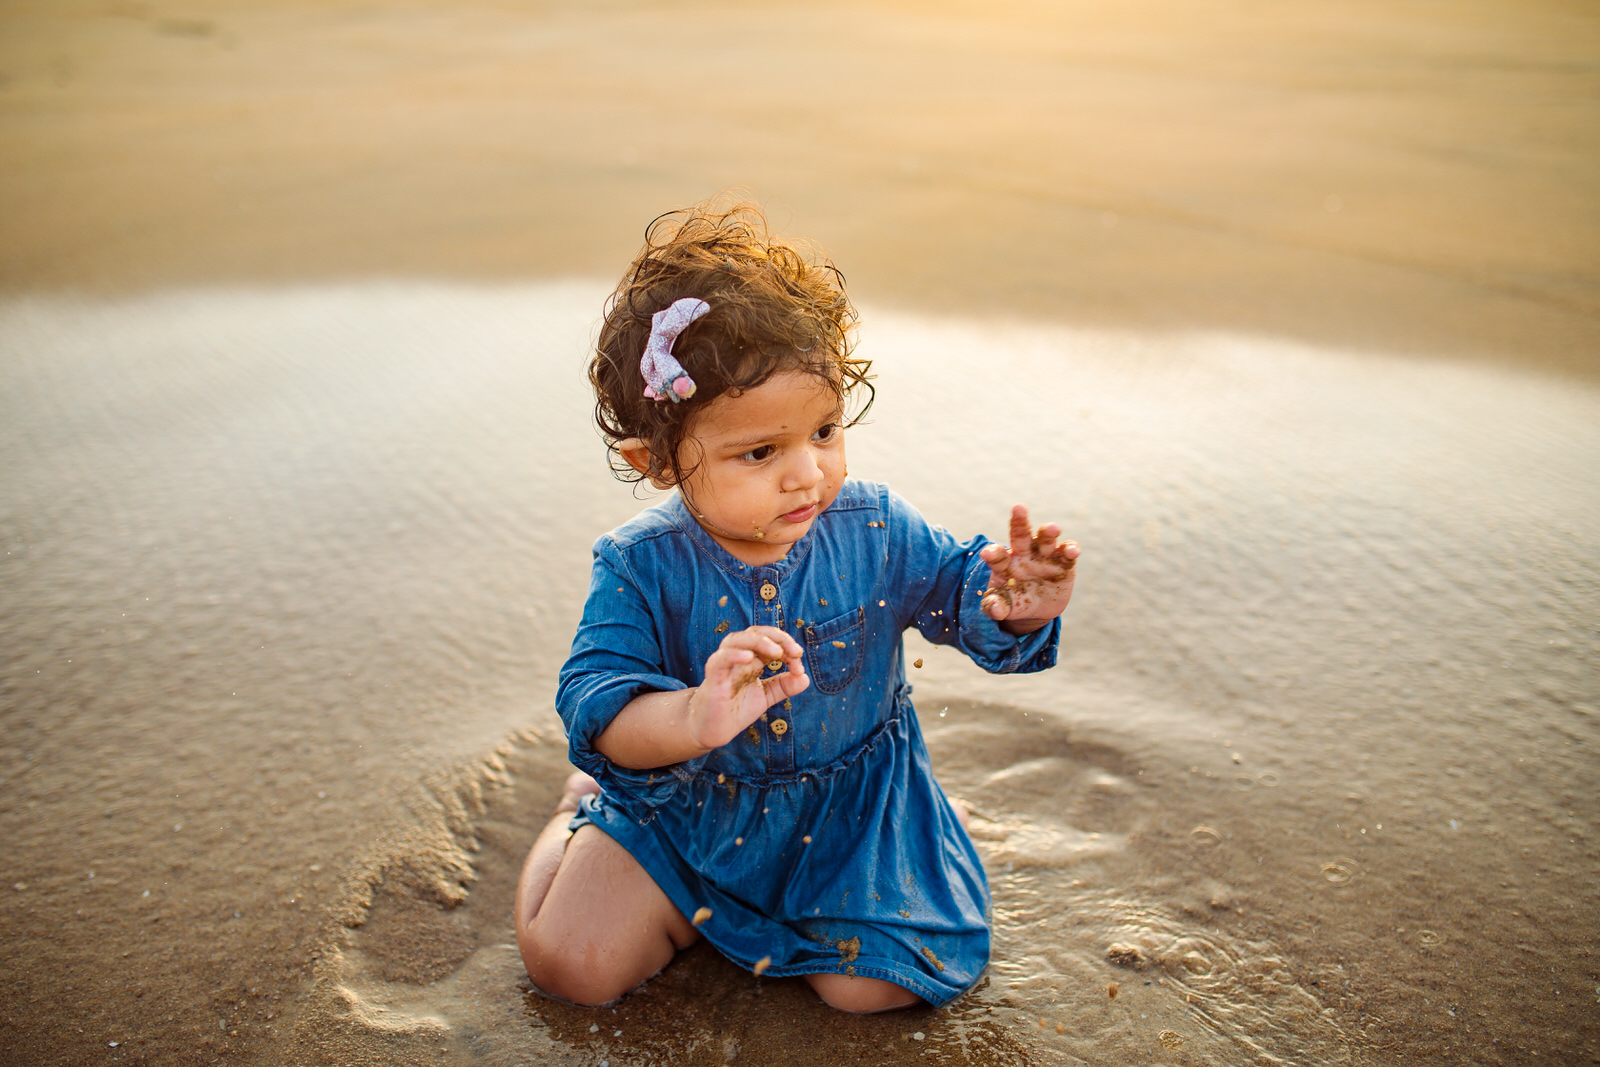 Ashlynn at the beach-73.jpg